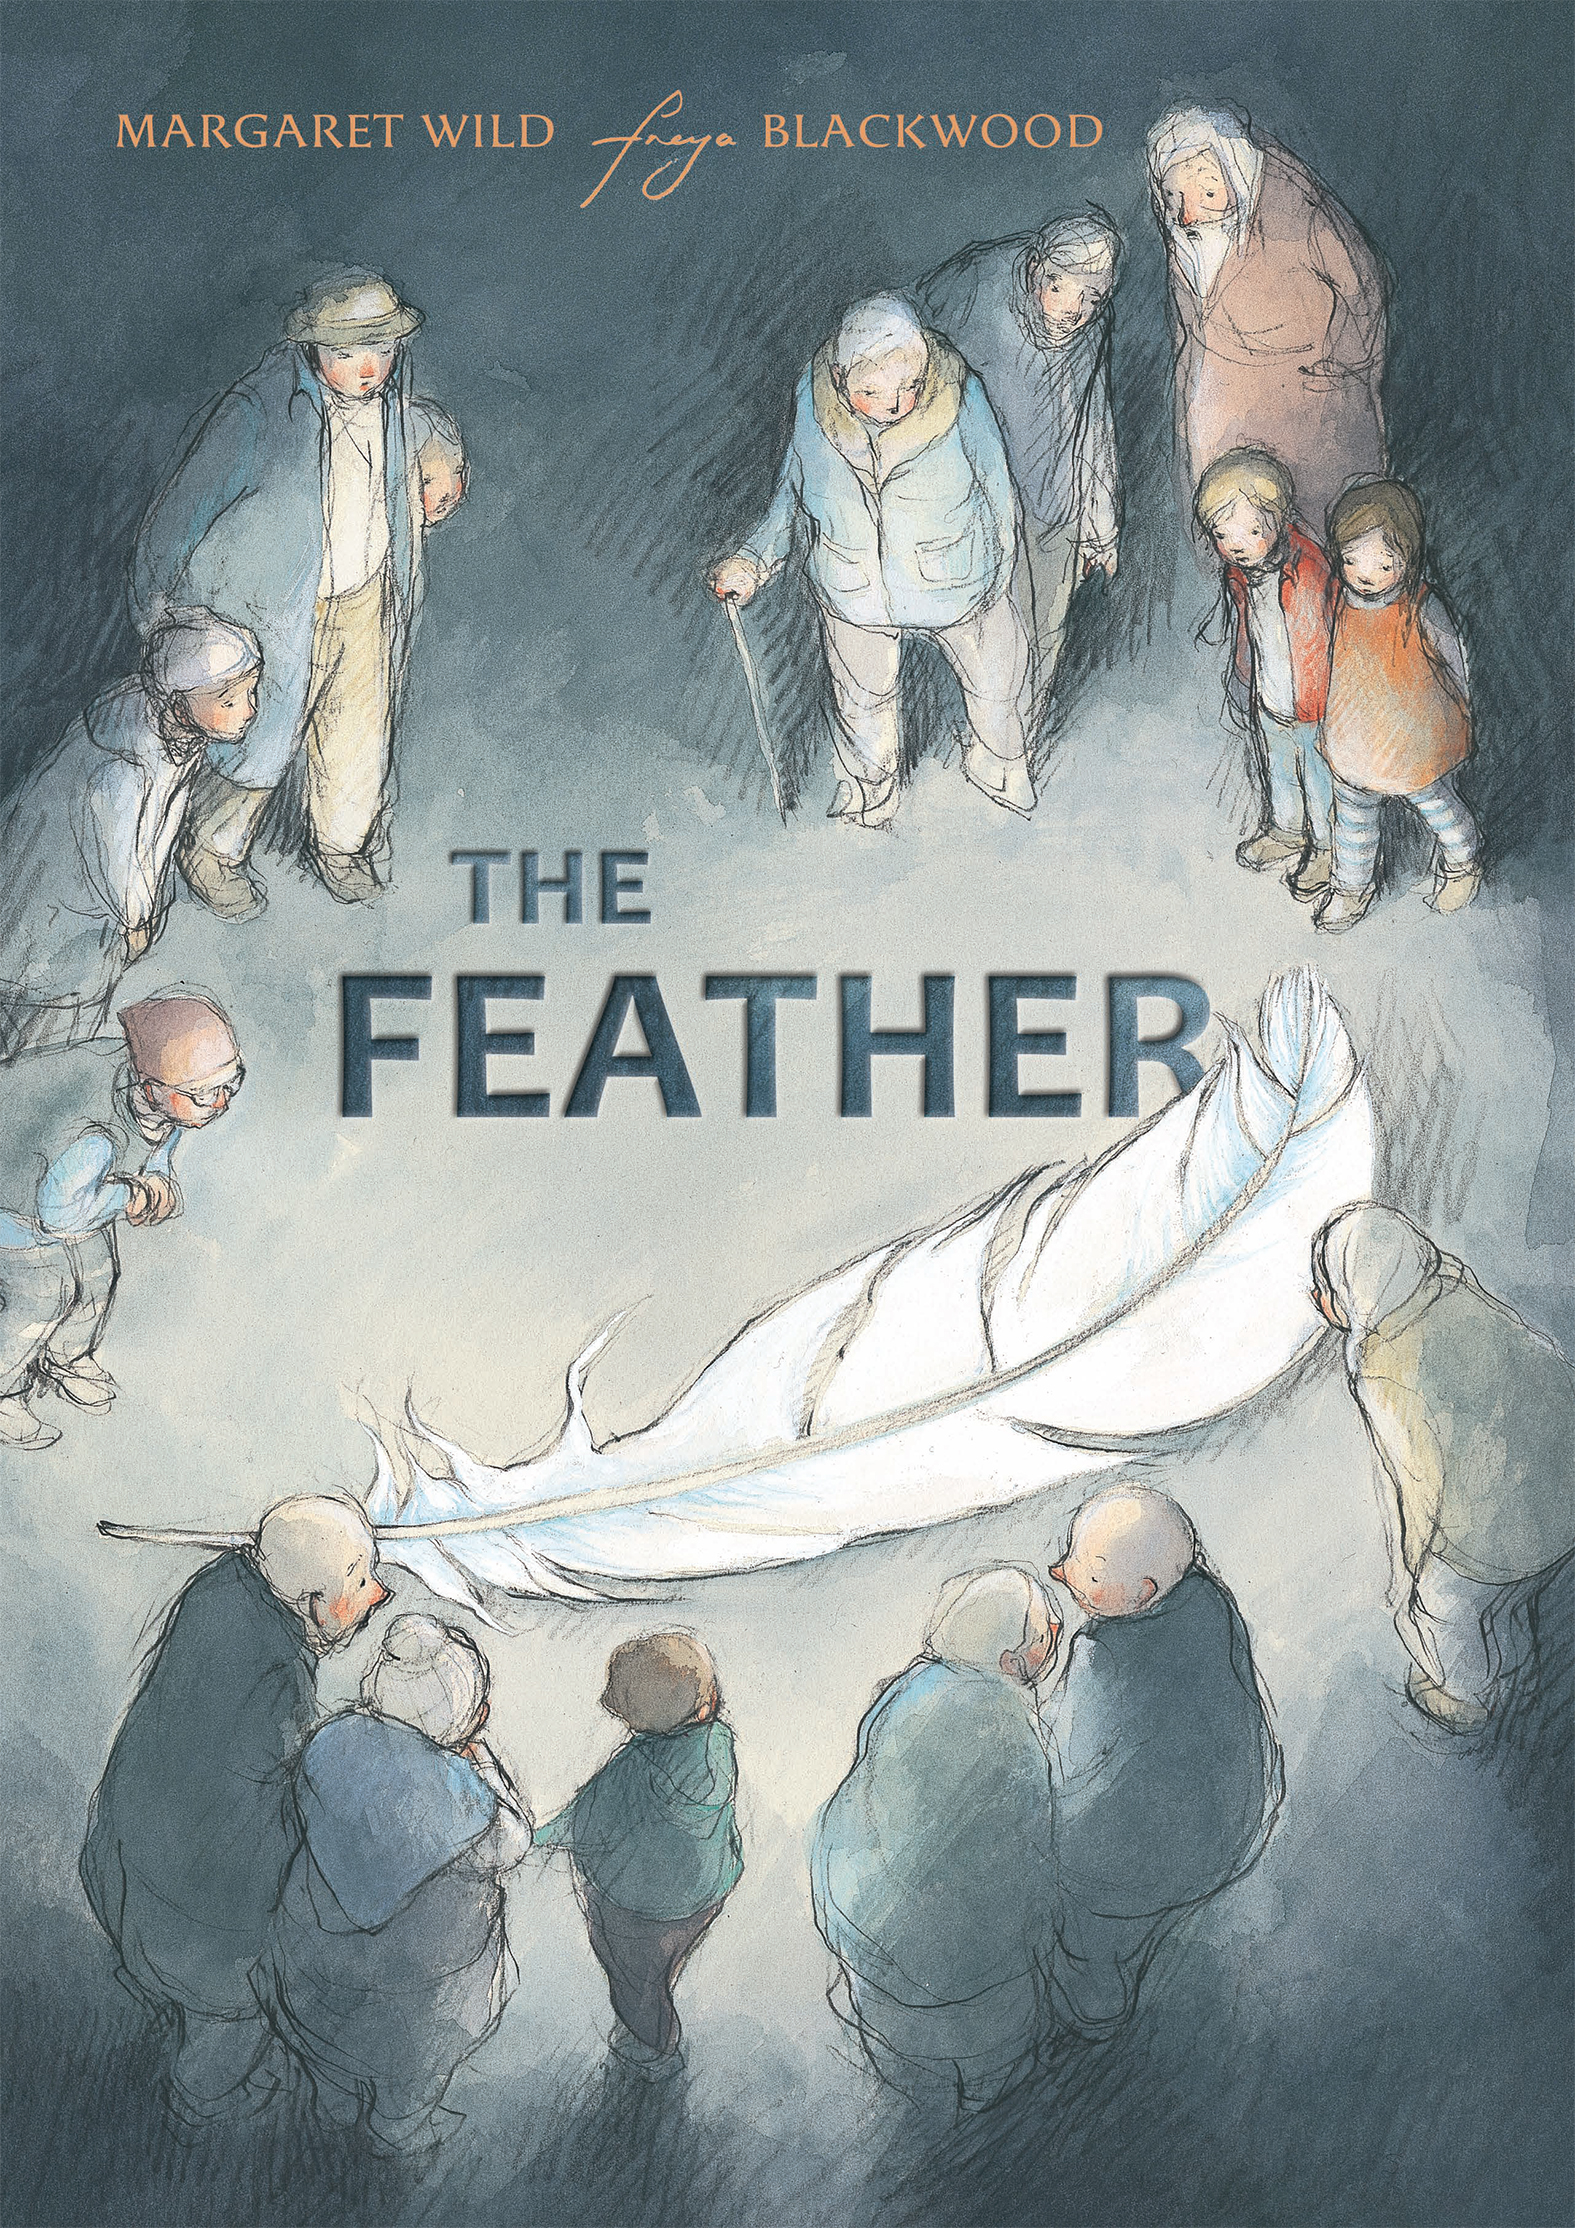 thefeather_cover.jpg